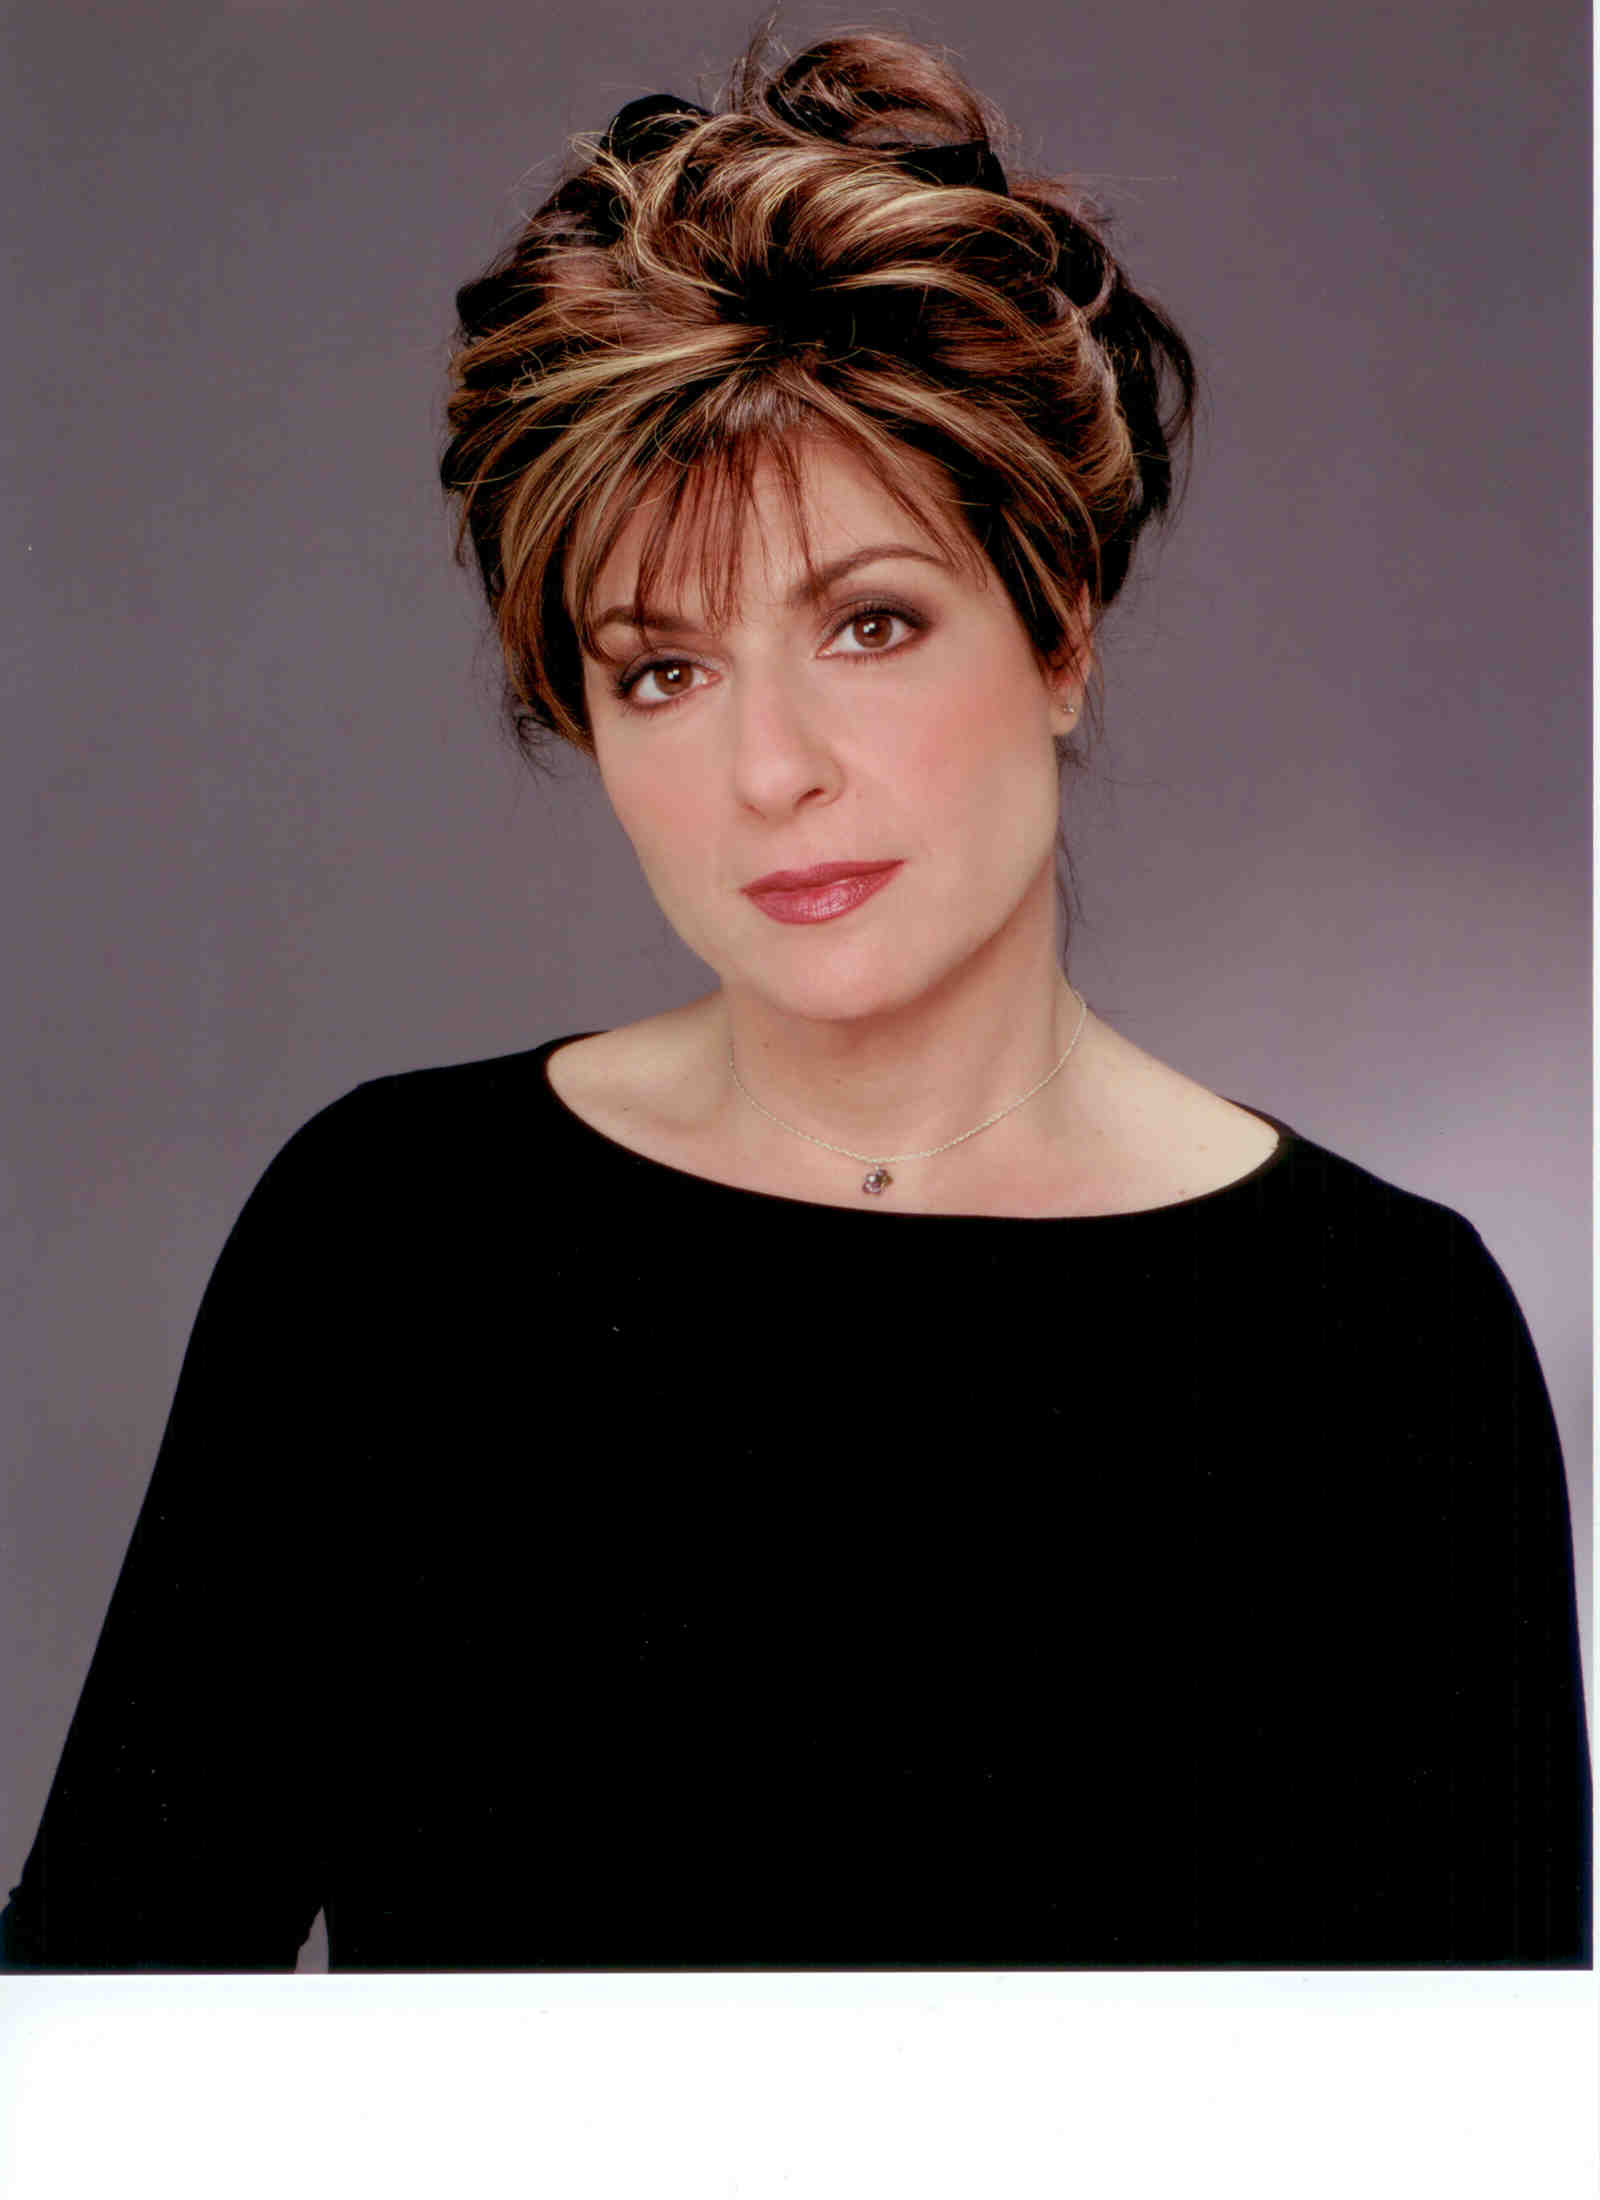 Caroline Aaron, HB Studio, NYC, Teacher of Advanced Acting for Camera